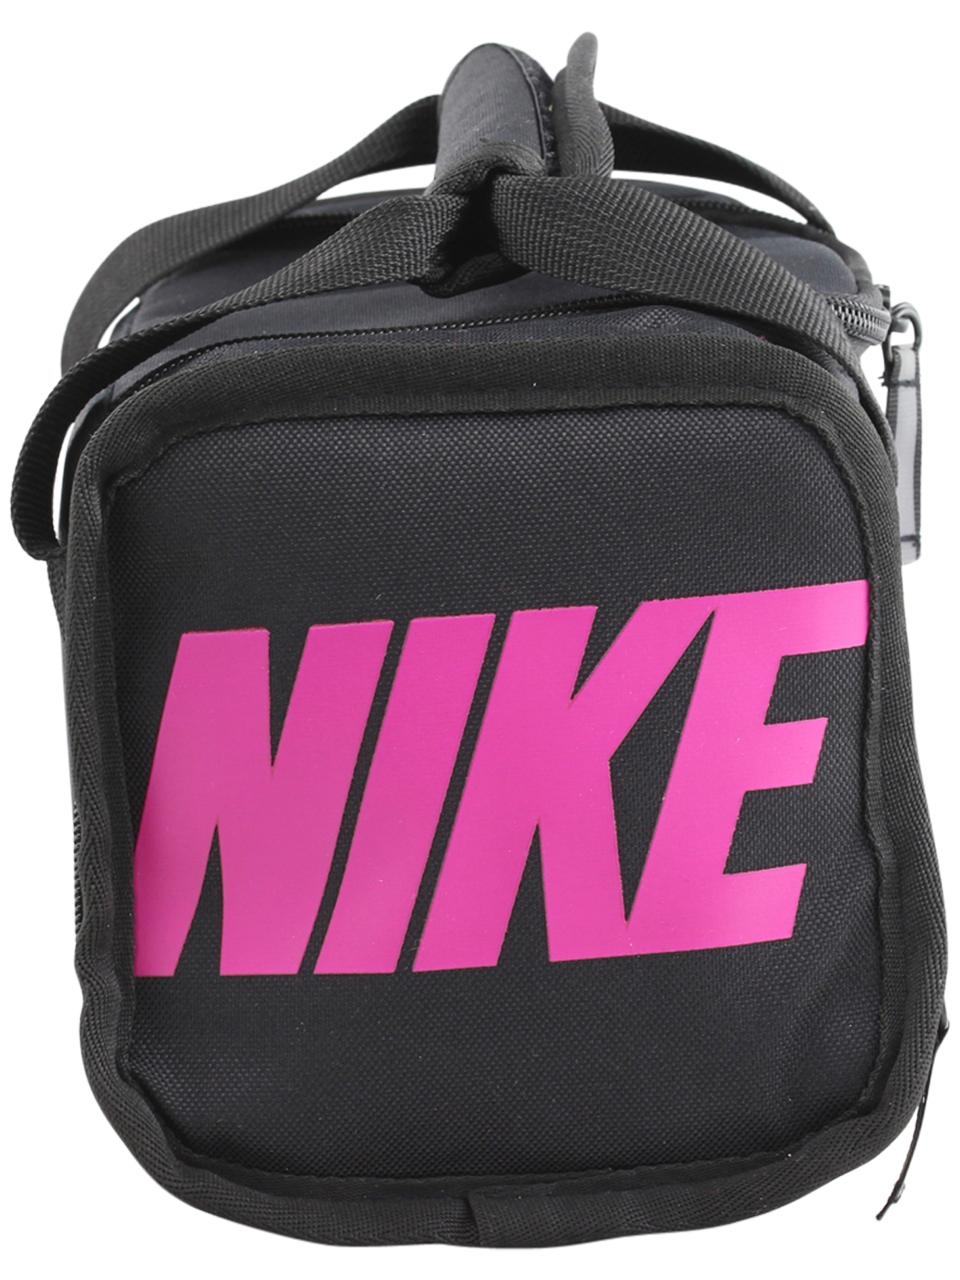 Nike-Deluxe-Insulated-Tote-Lunch-Bag thumbnail 11